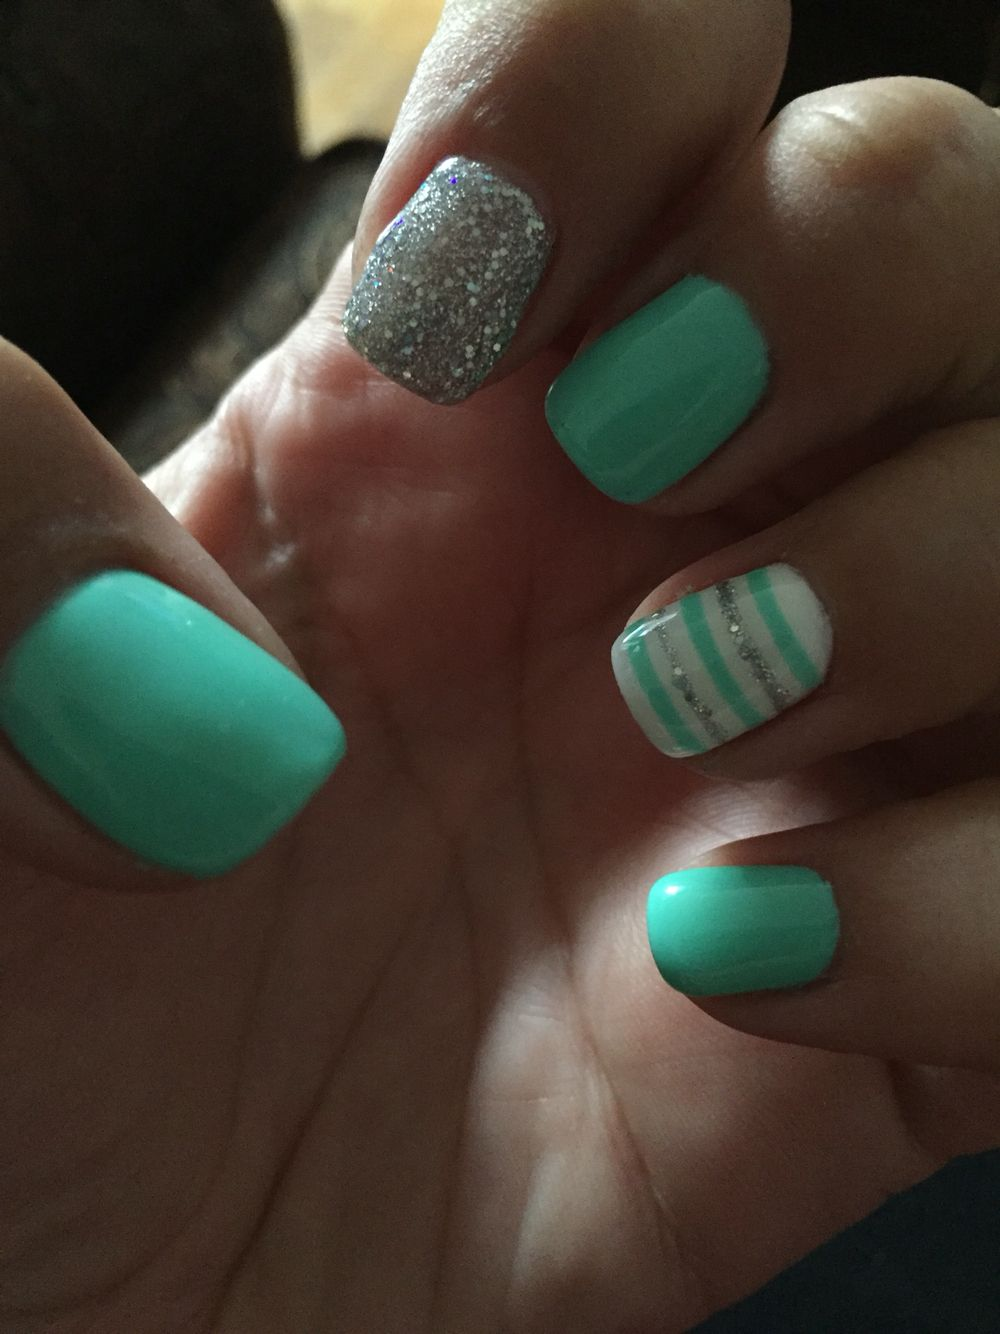 Loving my teal and silver nails! | Cute nails designs | Pinterest ...